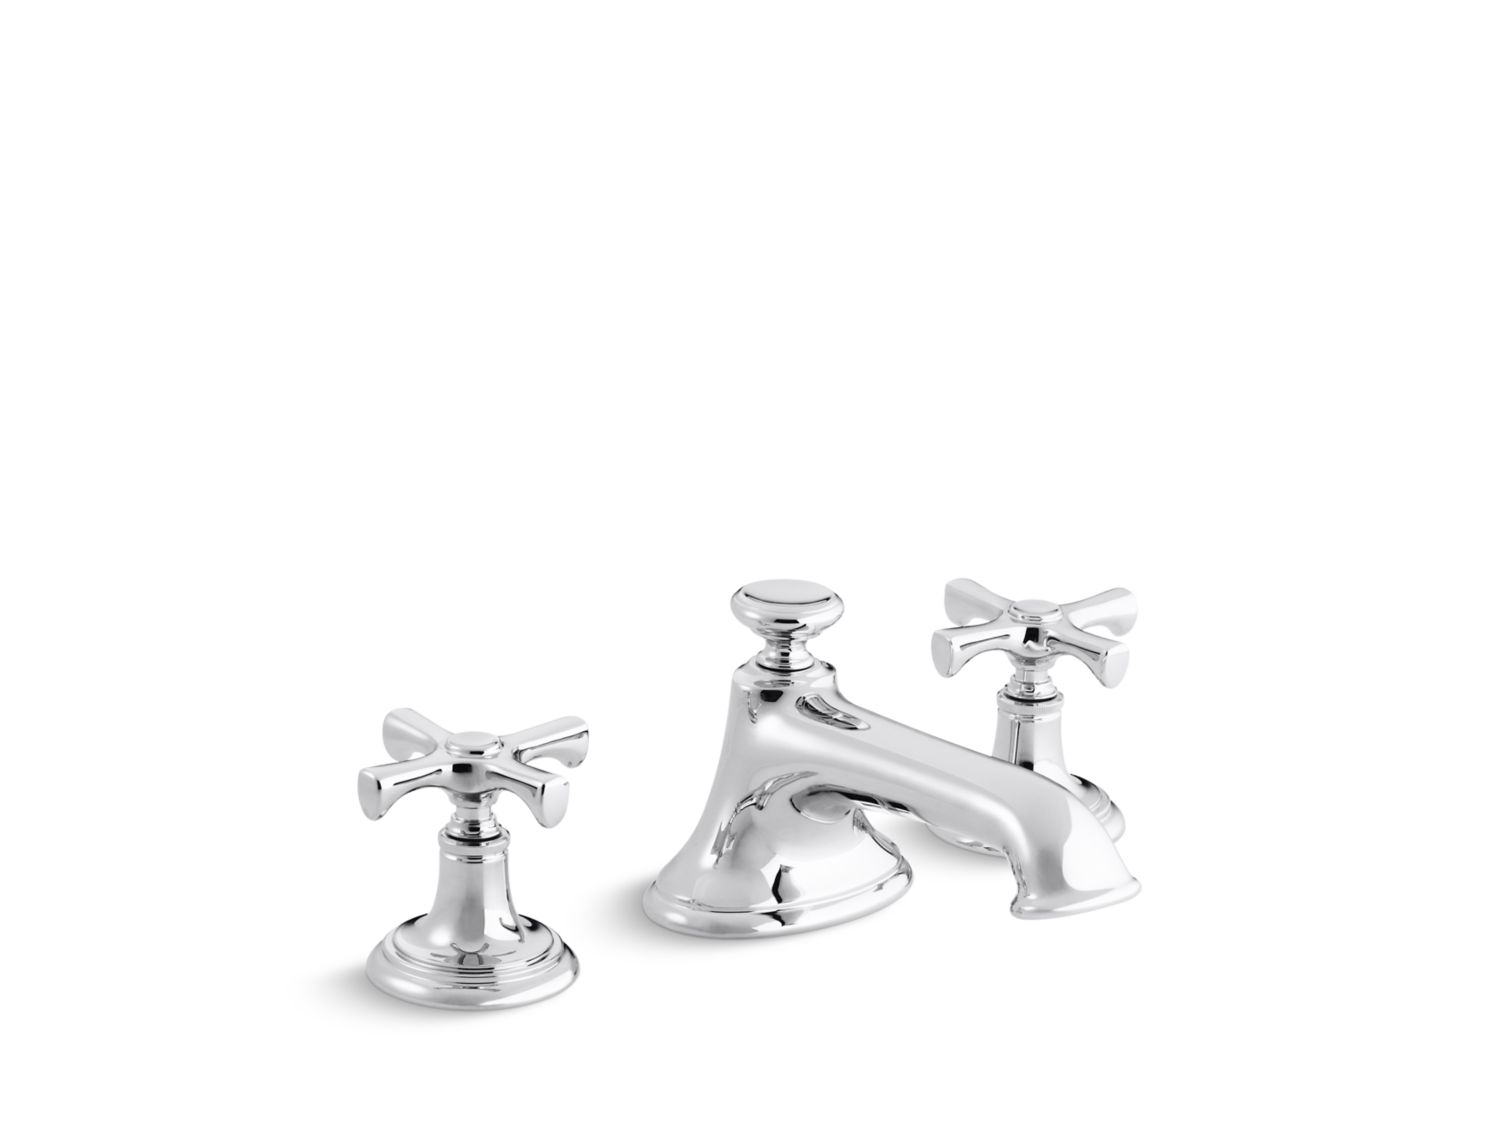 Bellis Noble Sink Faucet, Cross Handles | P24601-CR | Faucets ...